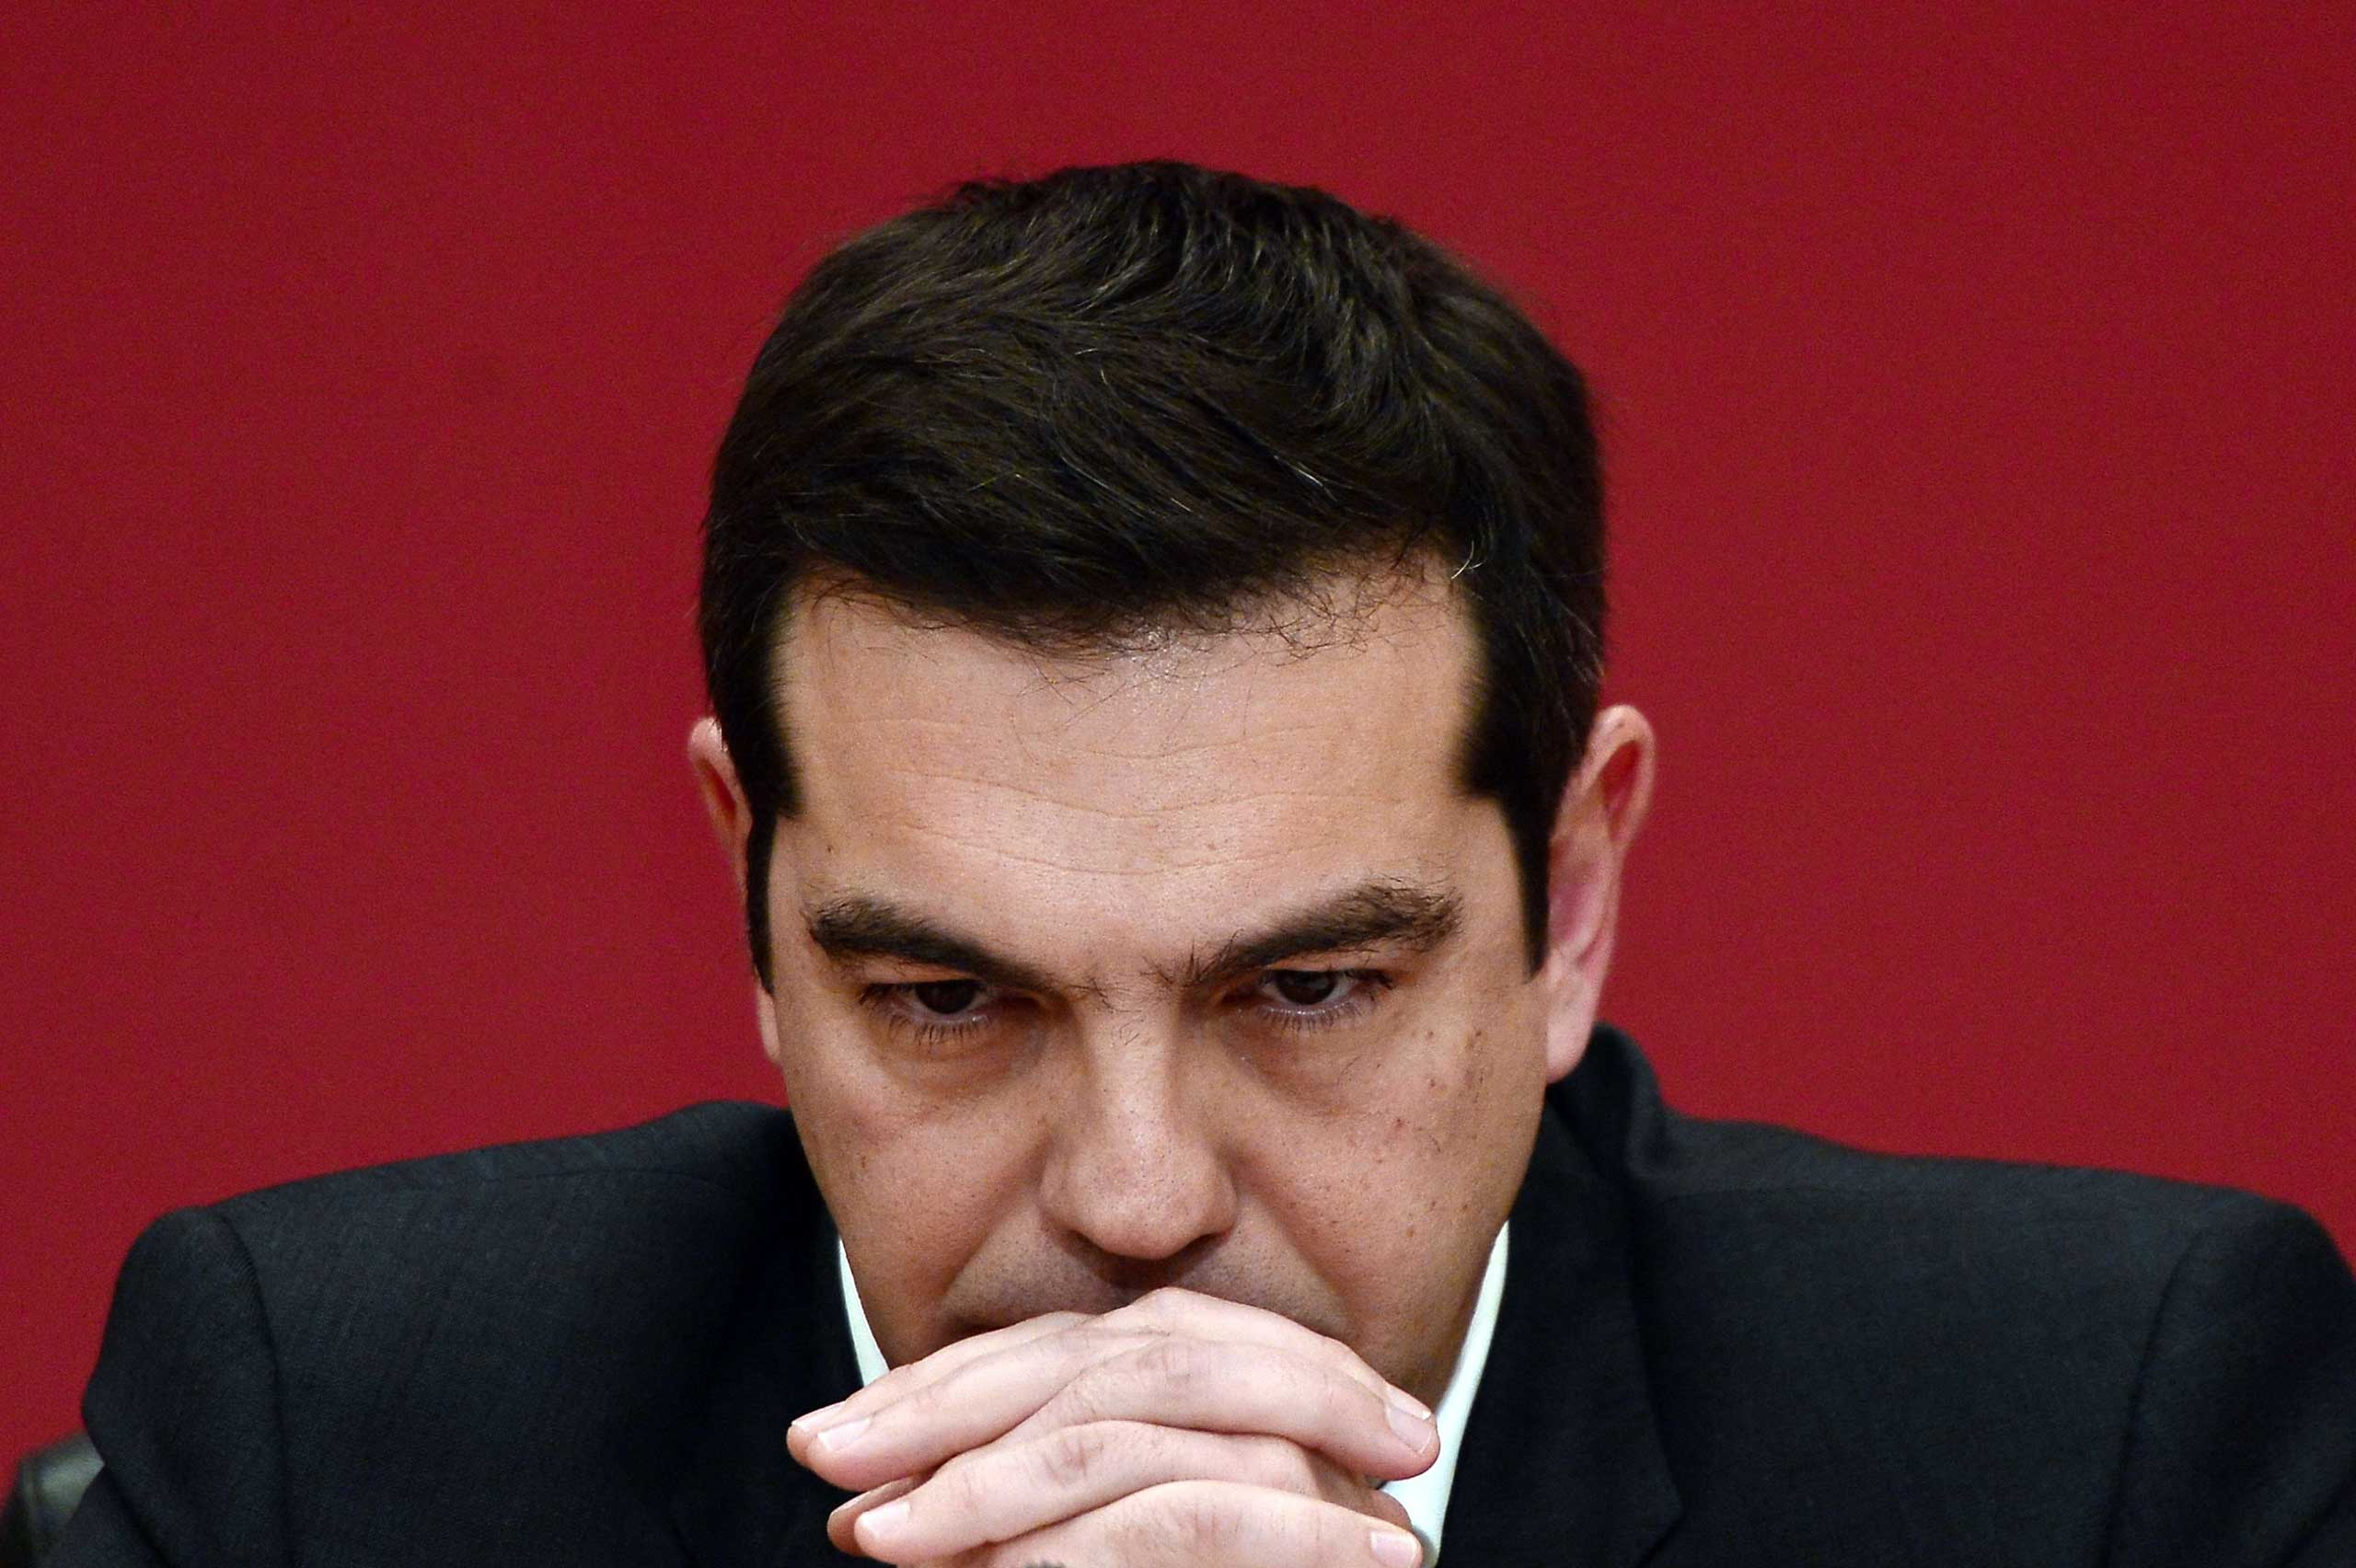 The leader of Syriza party, Alexis Tsipras, listens to a question during a televised press conference on Jan. 23, 2015 at the Zappion Hall in Athens.